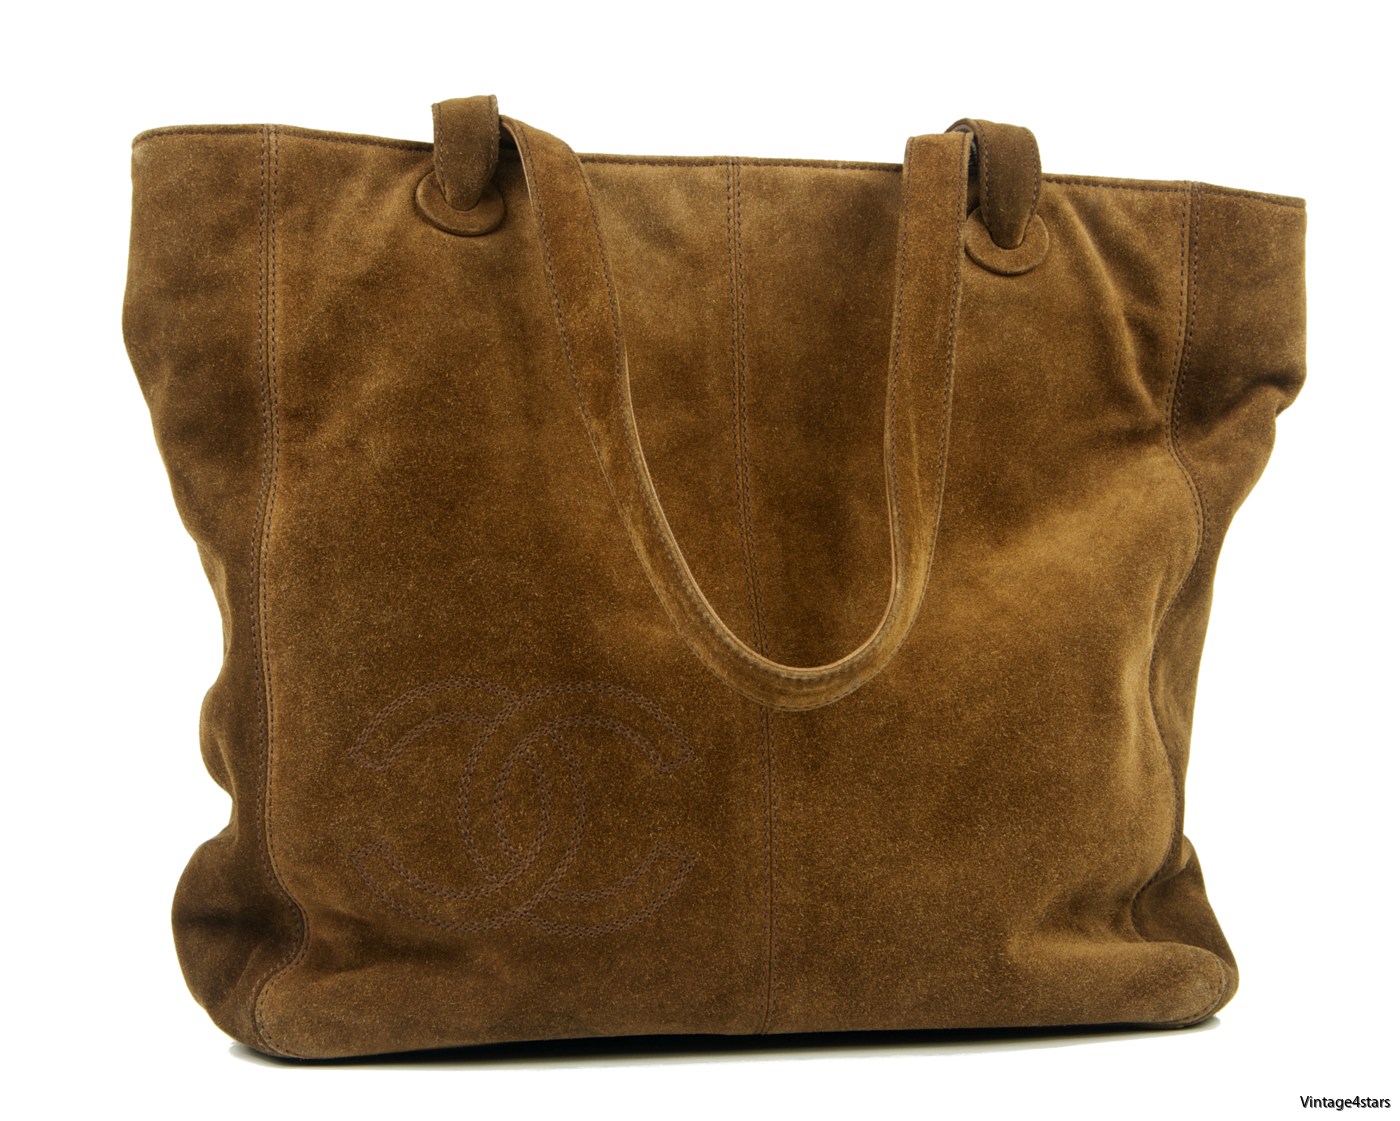 CHANEL Tote Suede Brown